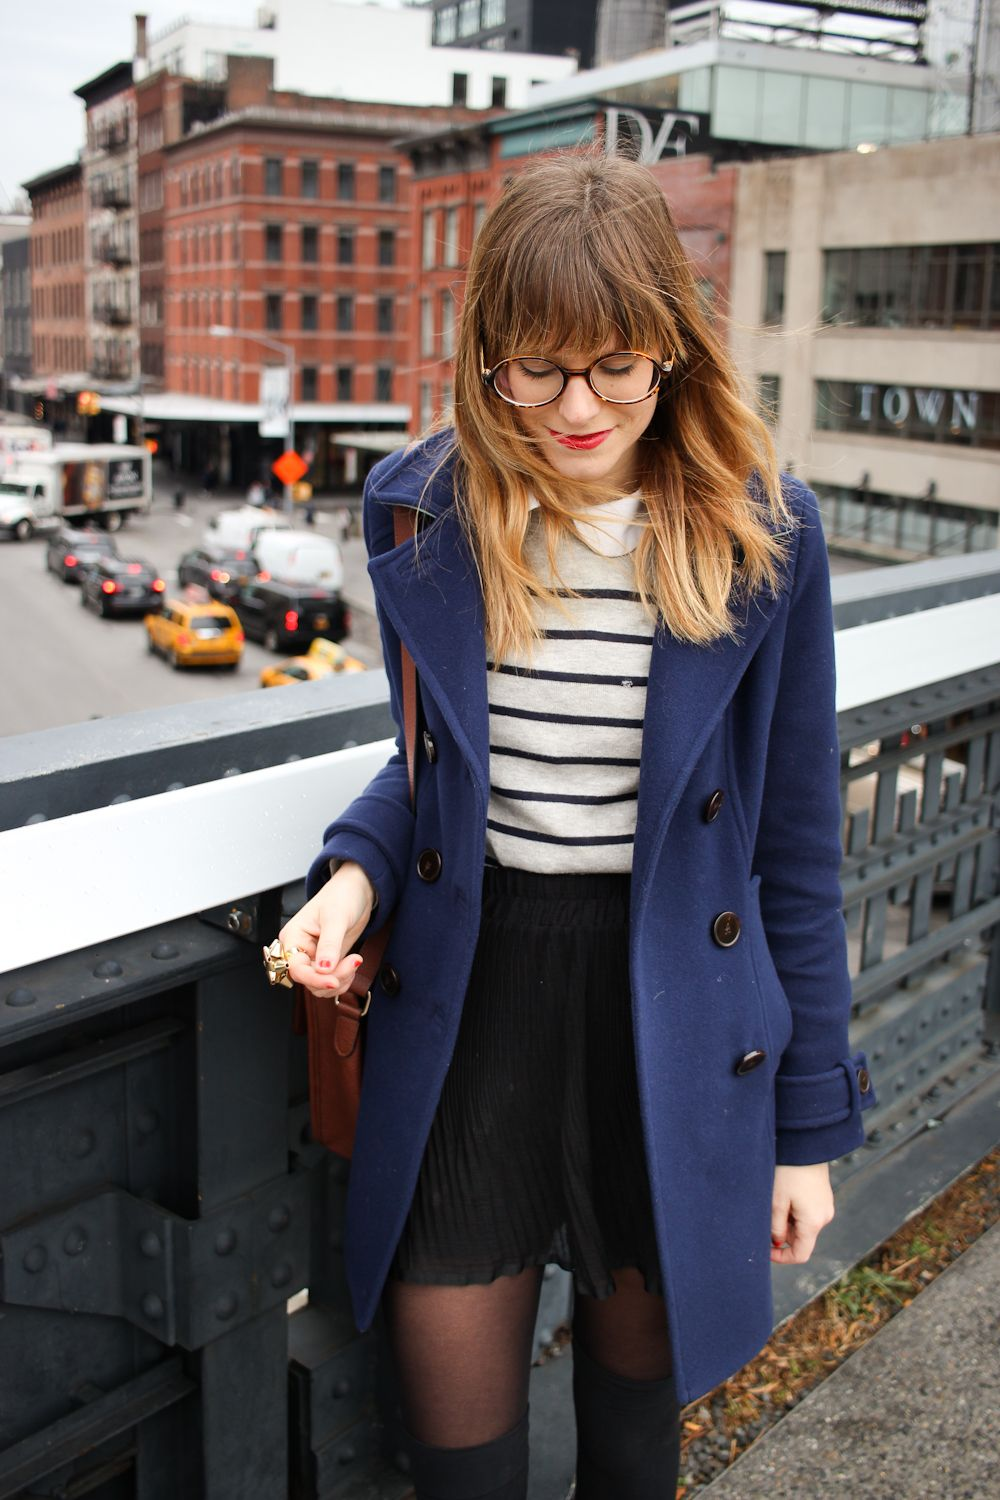 A NYC Vintage Fashion Blog by Steffy Kuncman sharing ...